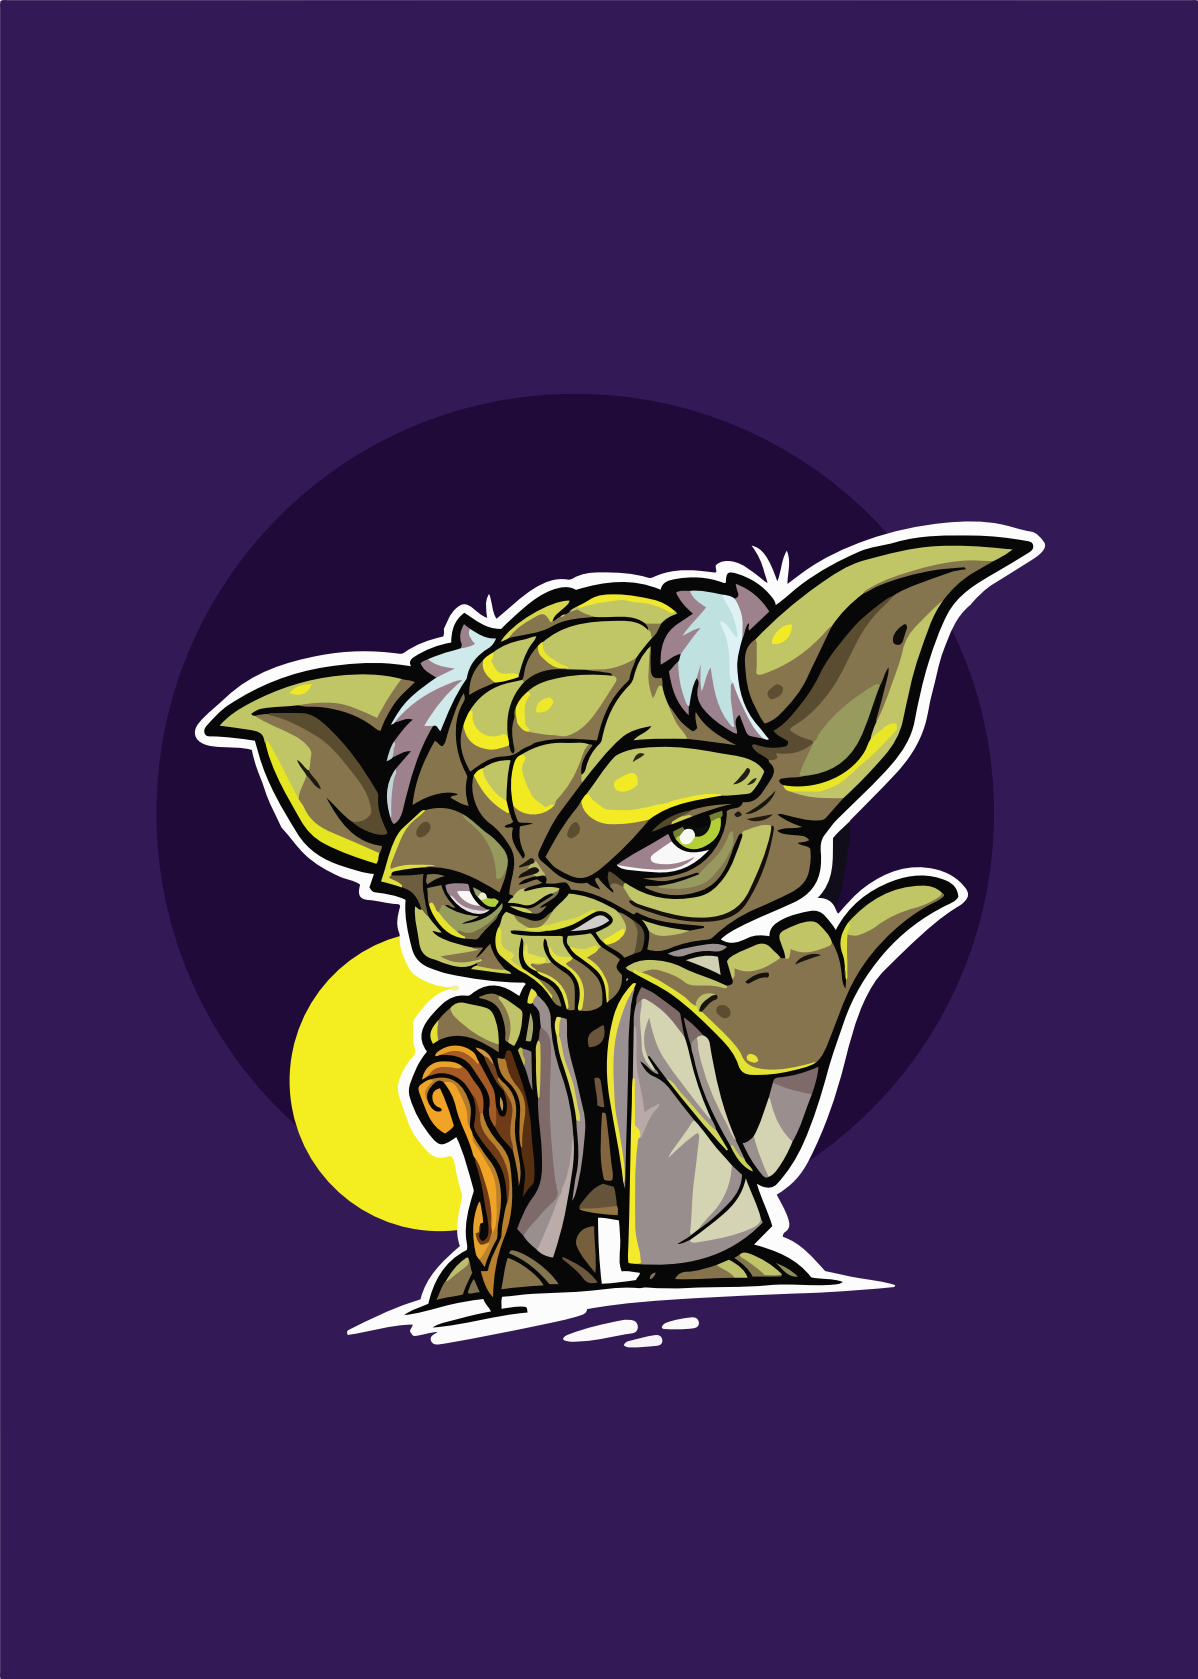 Star wars characters illustrations Yoda and Stormtrooper